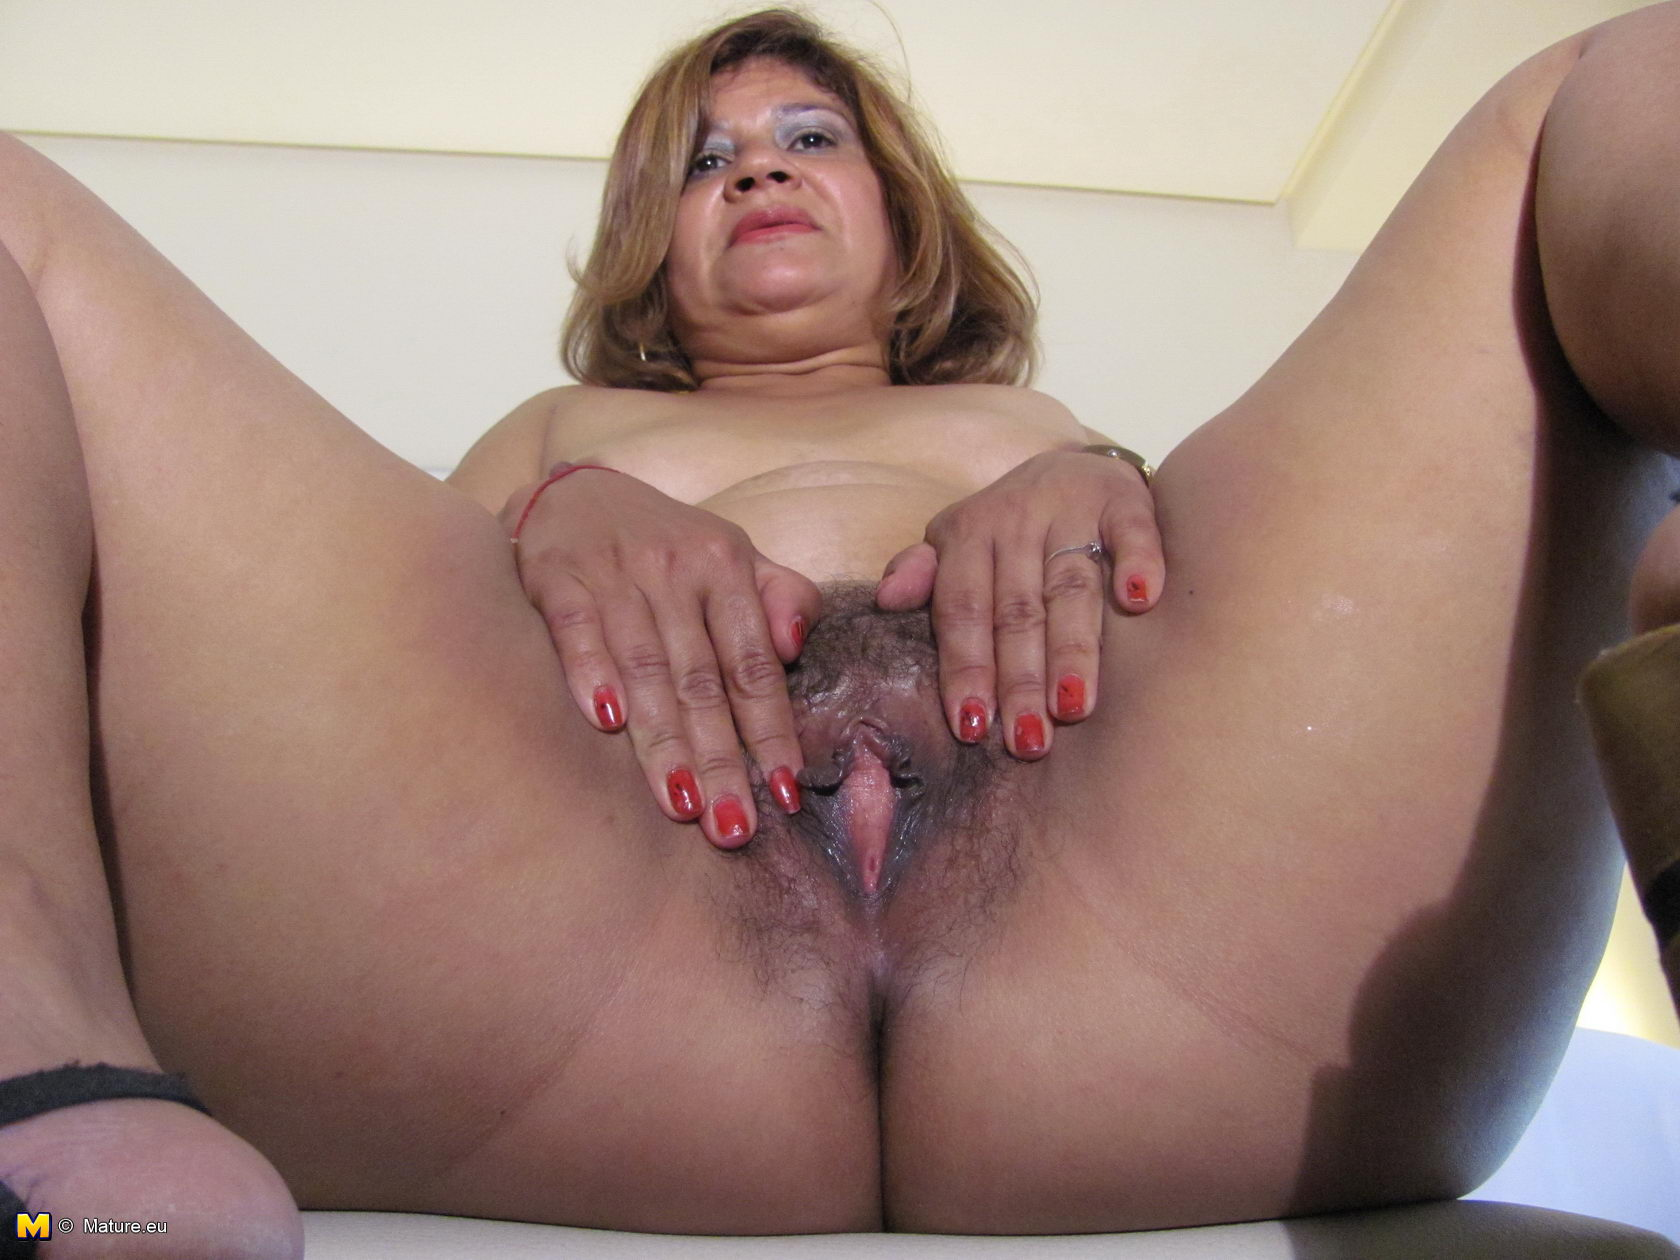 Latina blowjob tube